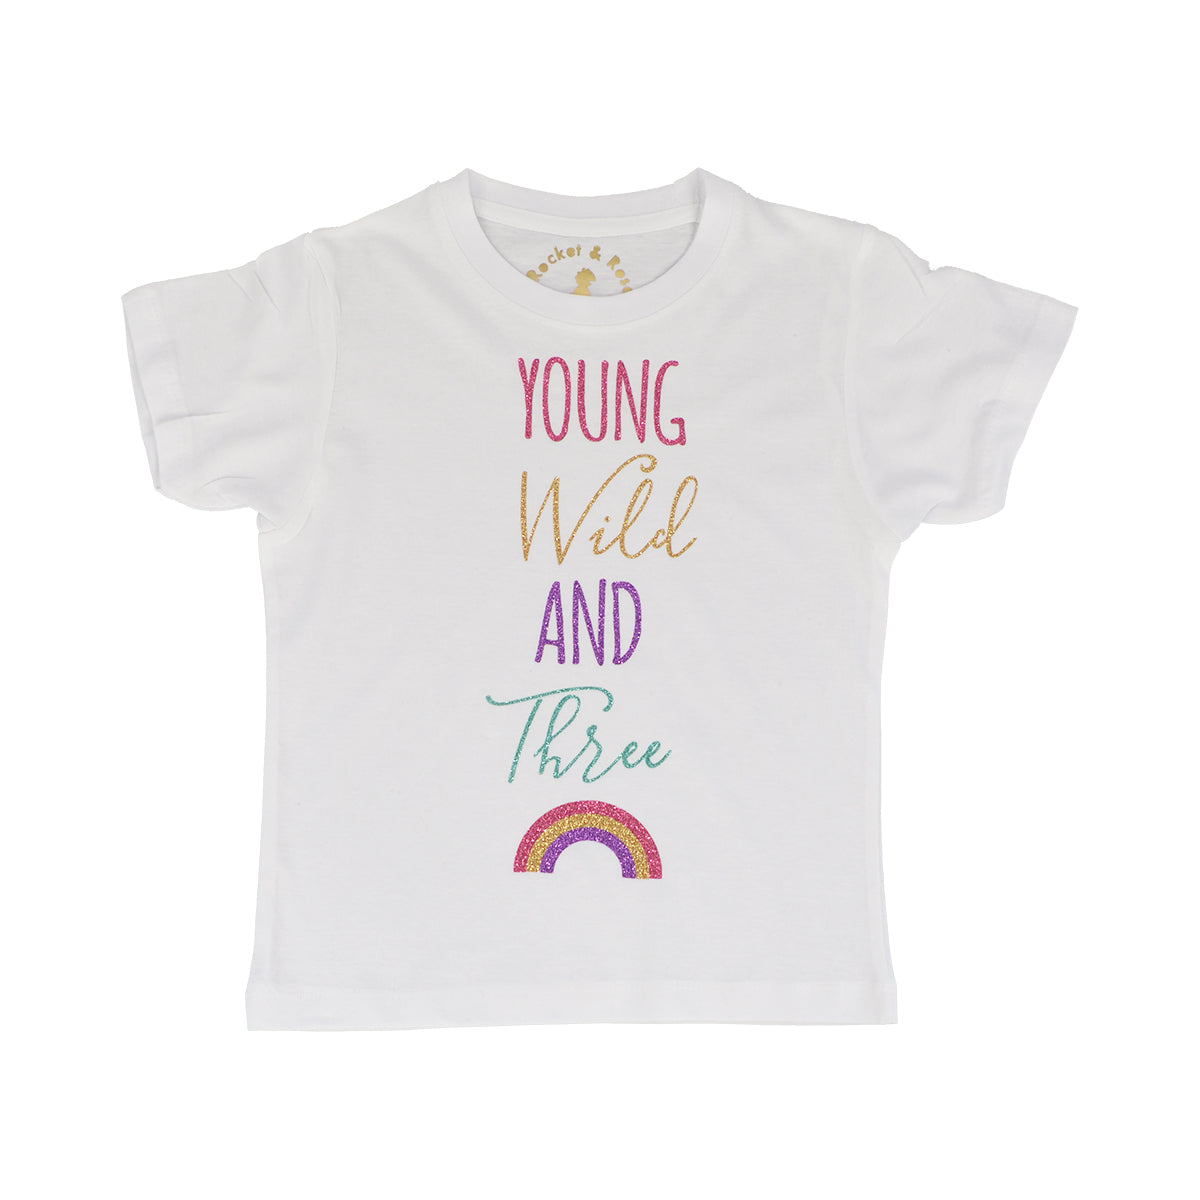 Young Wild Three Rainbow Cute Kids Slogan T Shirt Rocket Rose